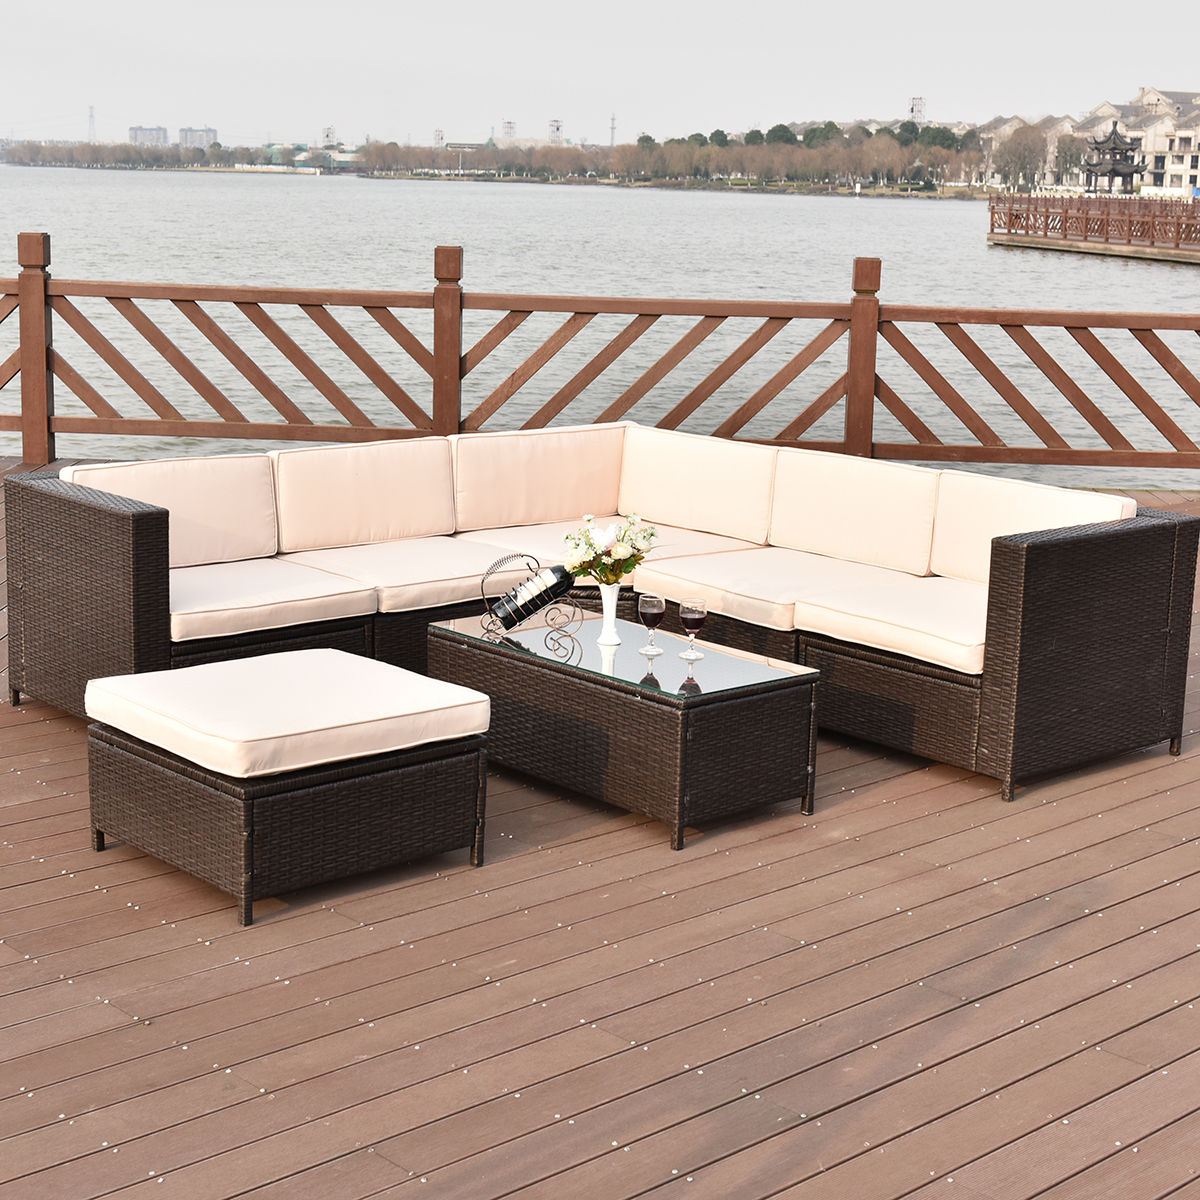 Costway 7 PCS Outdoor Rattan Wicker Furniture Set Sectional